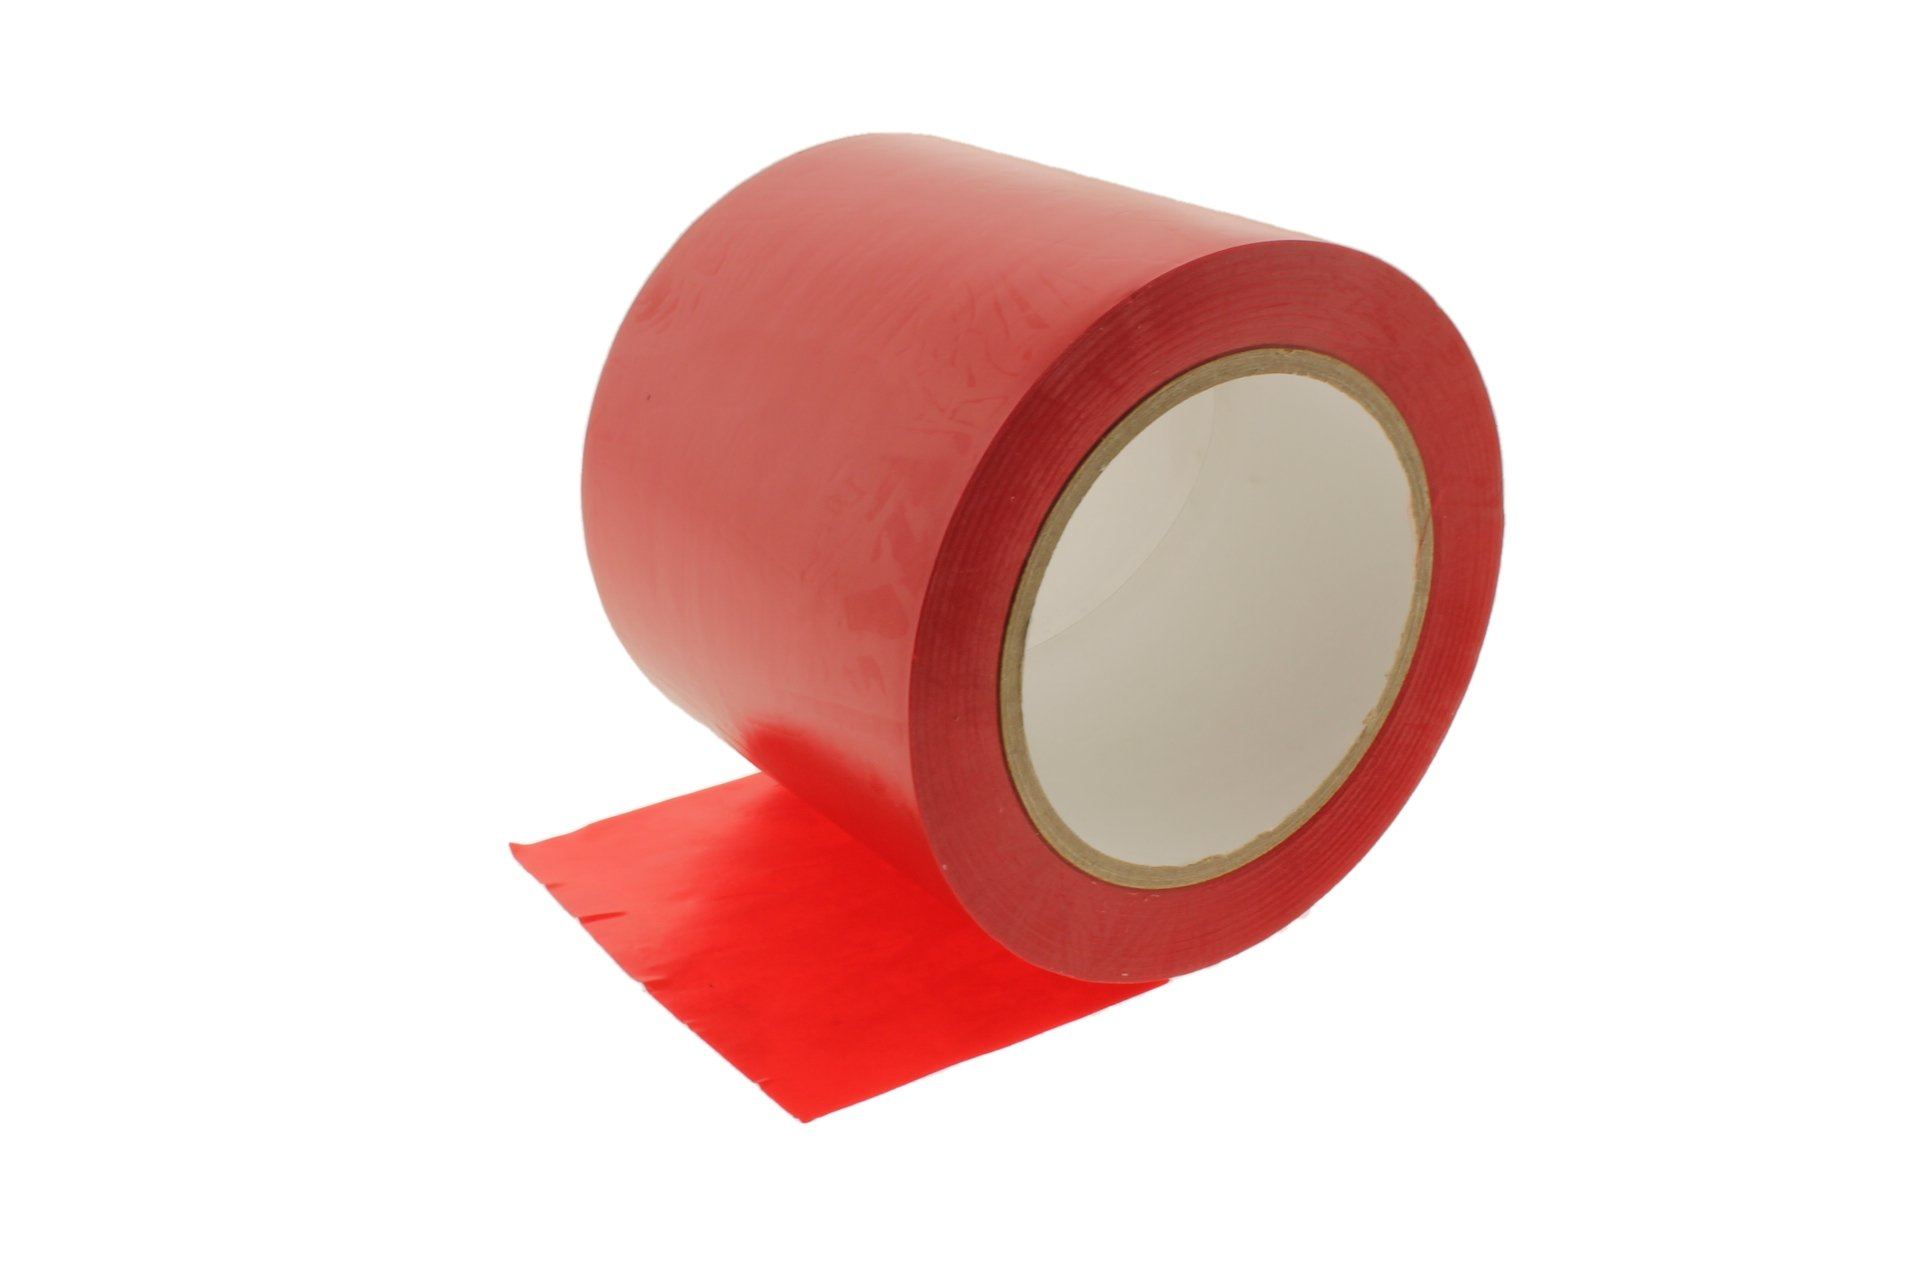 4'' General Purpose Red Insulated Adhesive PVC Vinyl Sealing Coding Marking Electrical Tape (3.76 in 96MM) 36 yard 7 mil